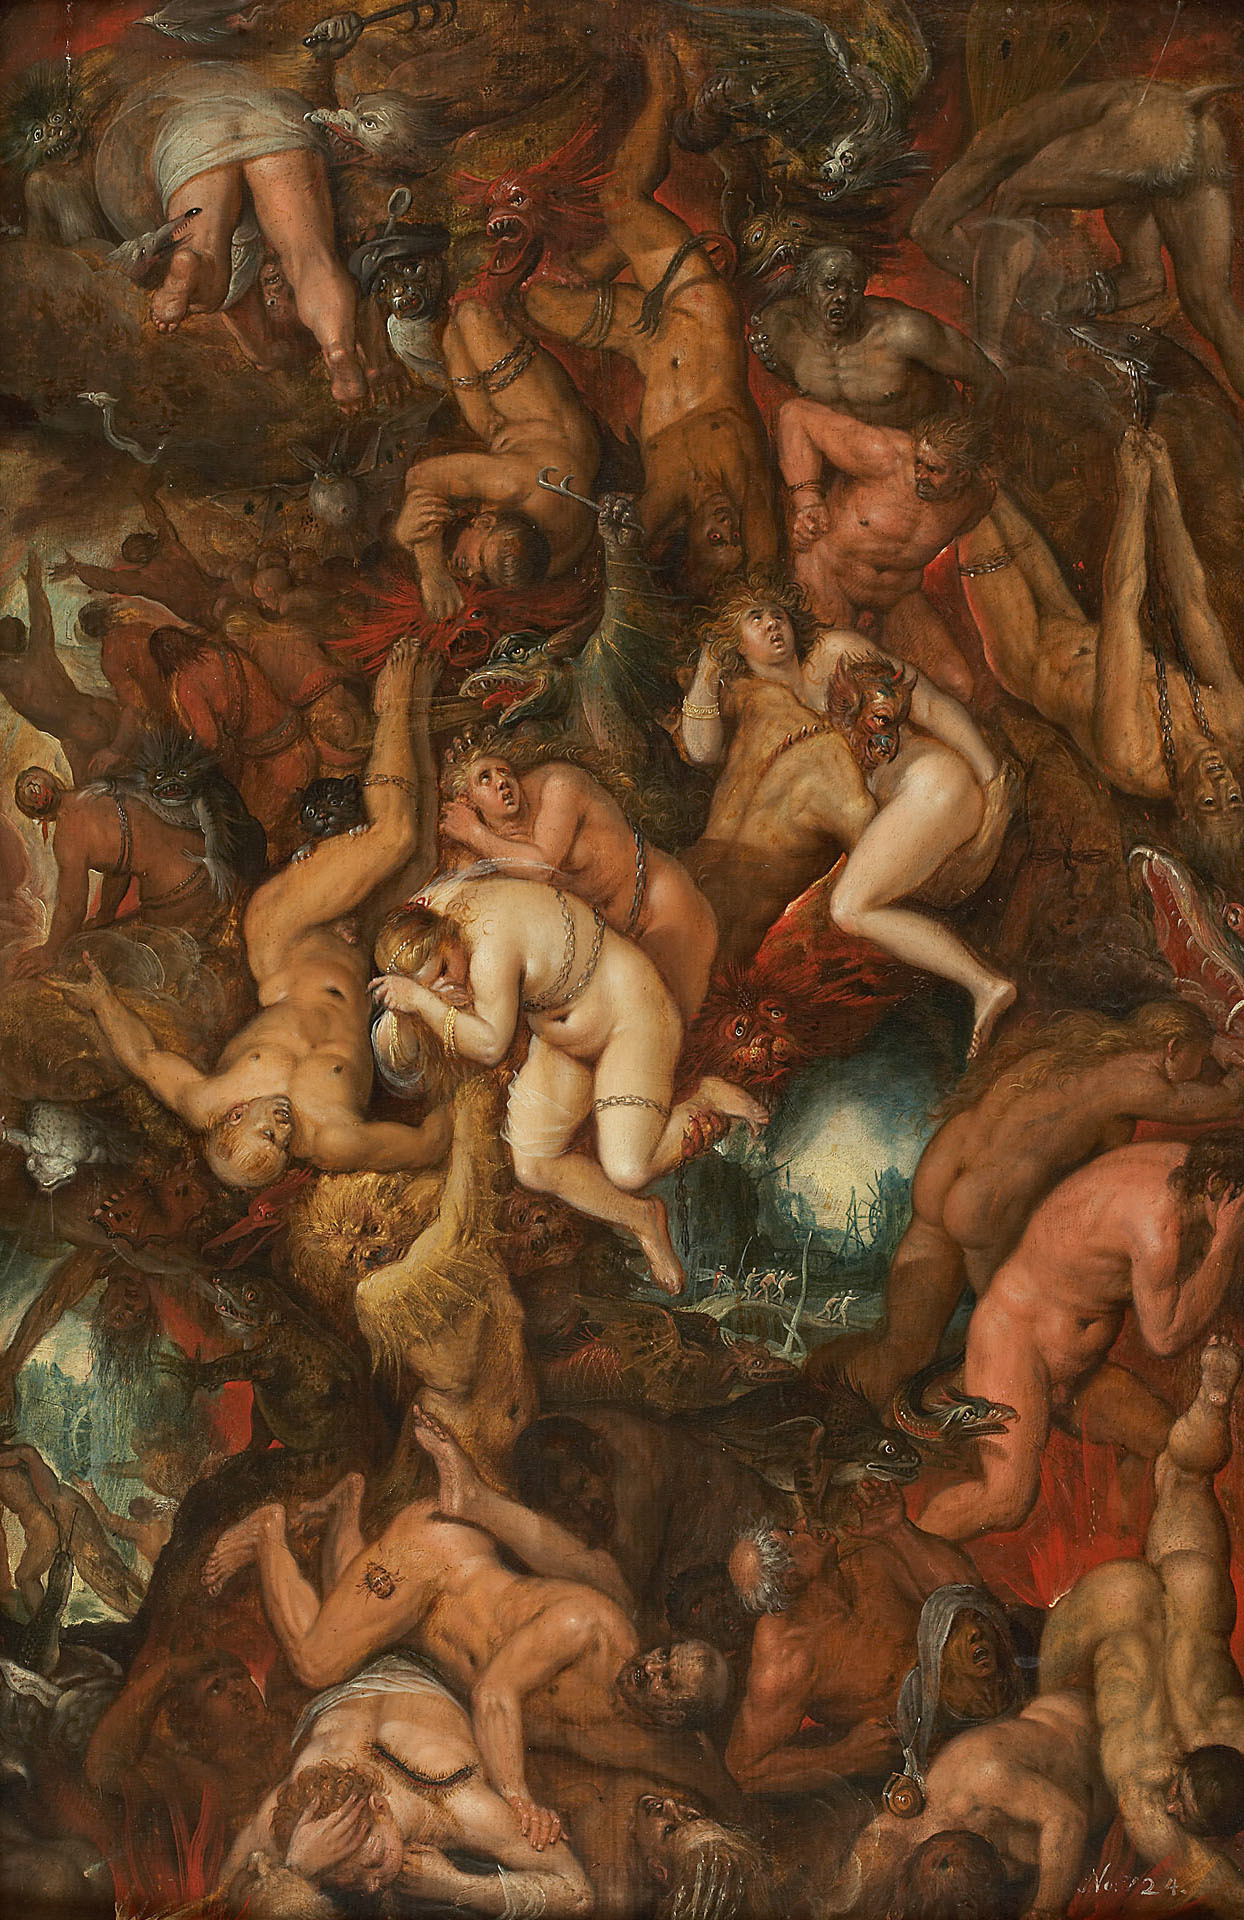 Frans Francken the Younger - The Damned Cast into Hell, 15th C